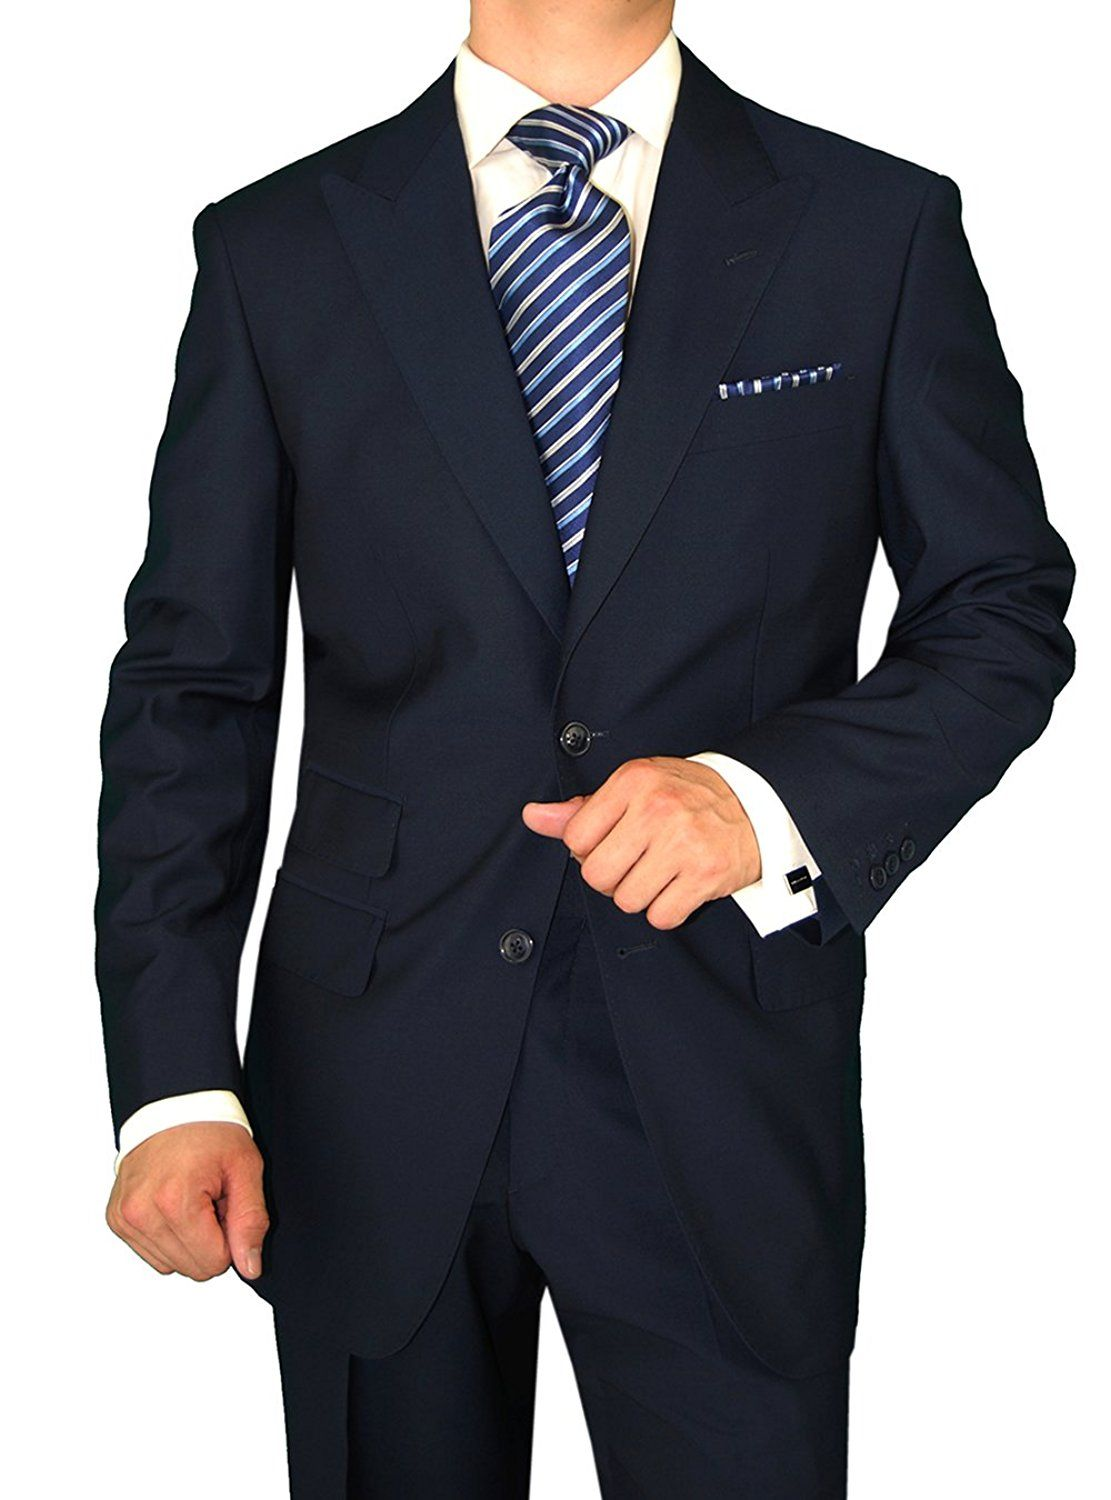 be2393505de9 Gino Valentino Men's Two Button Jacket Flat Front Pants Ticket Pocket Navy  Suit (44 Long US / 54 Long EU) at Amazon Men's Clothing store: Business  Suit ...